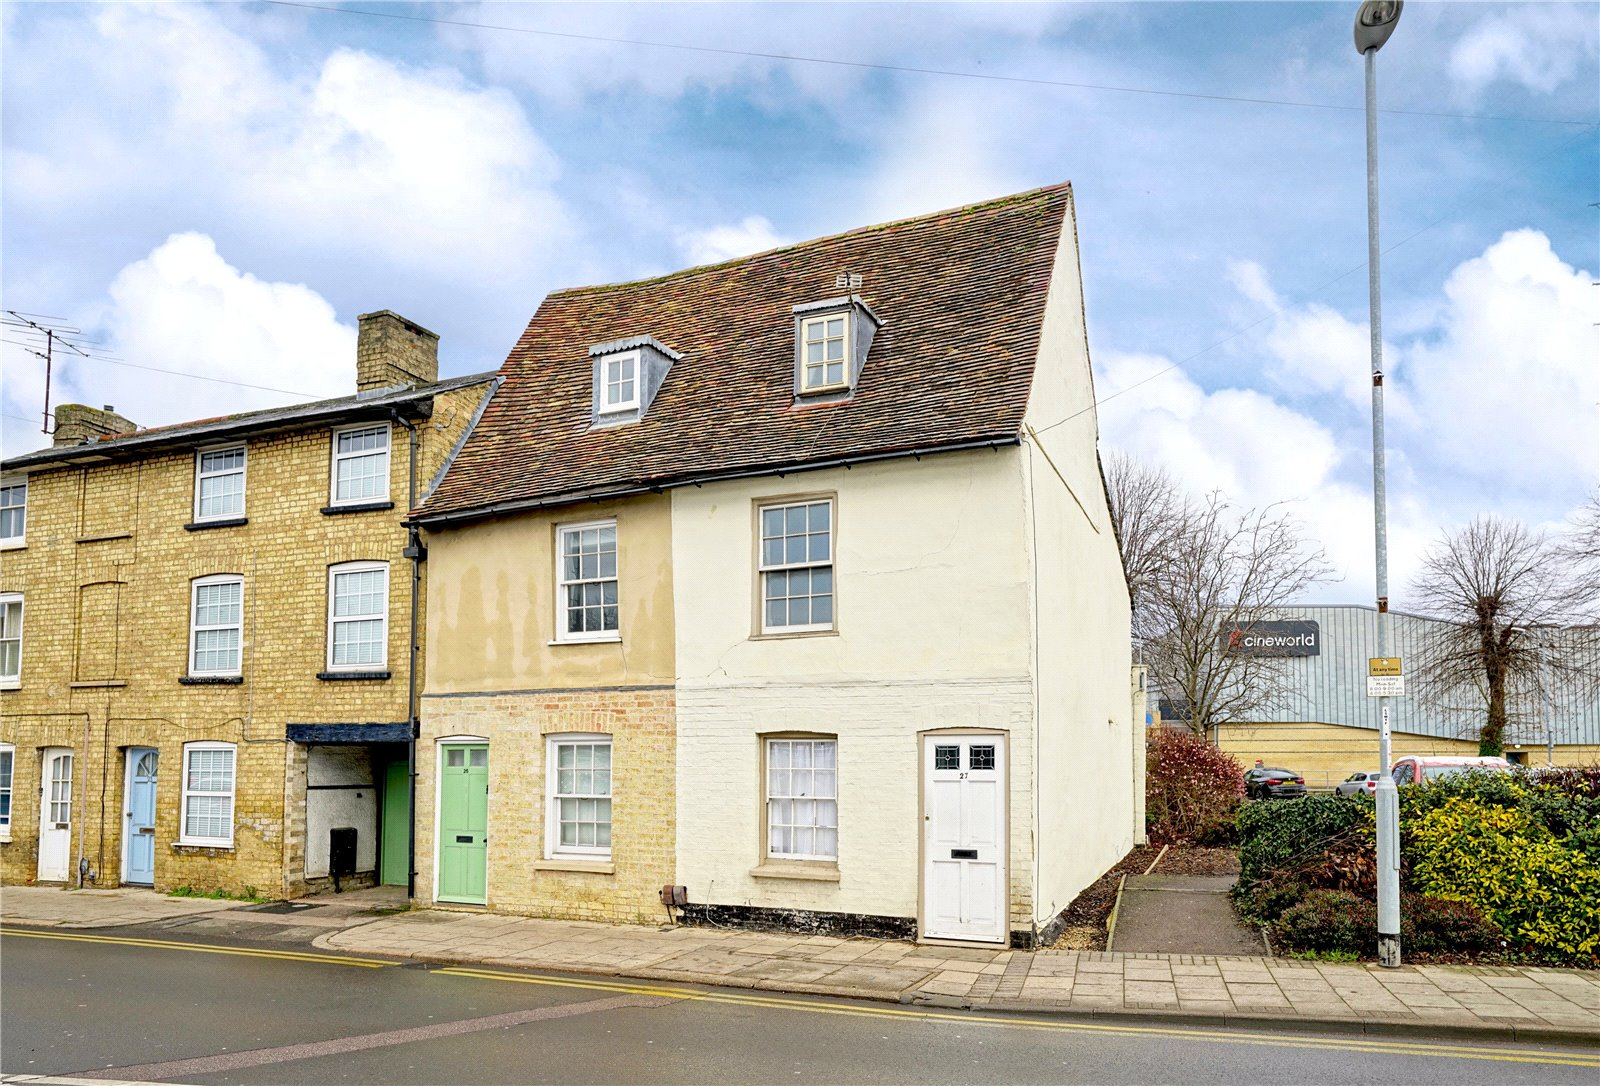 2 bed house for sale in Cambridge Street, St. Neots, PE19